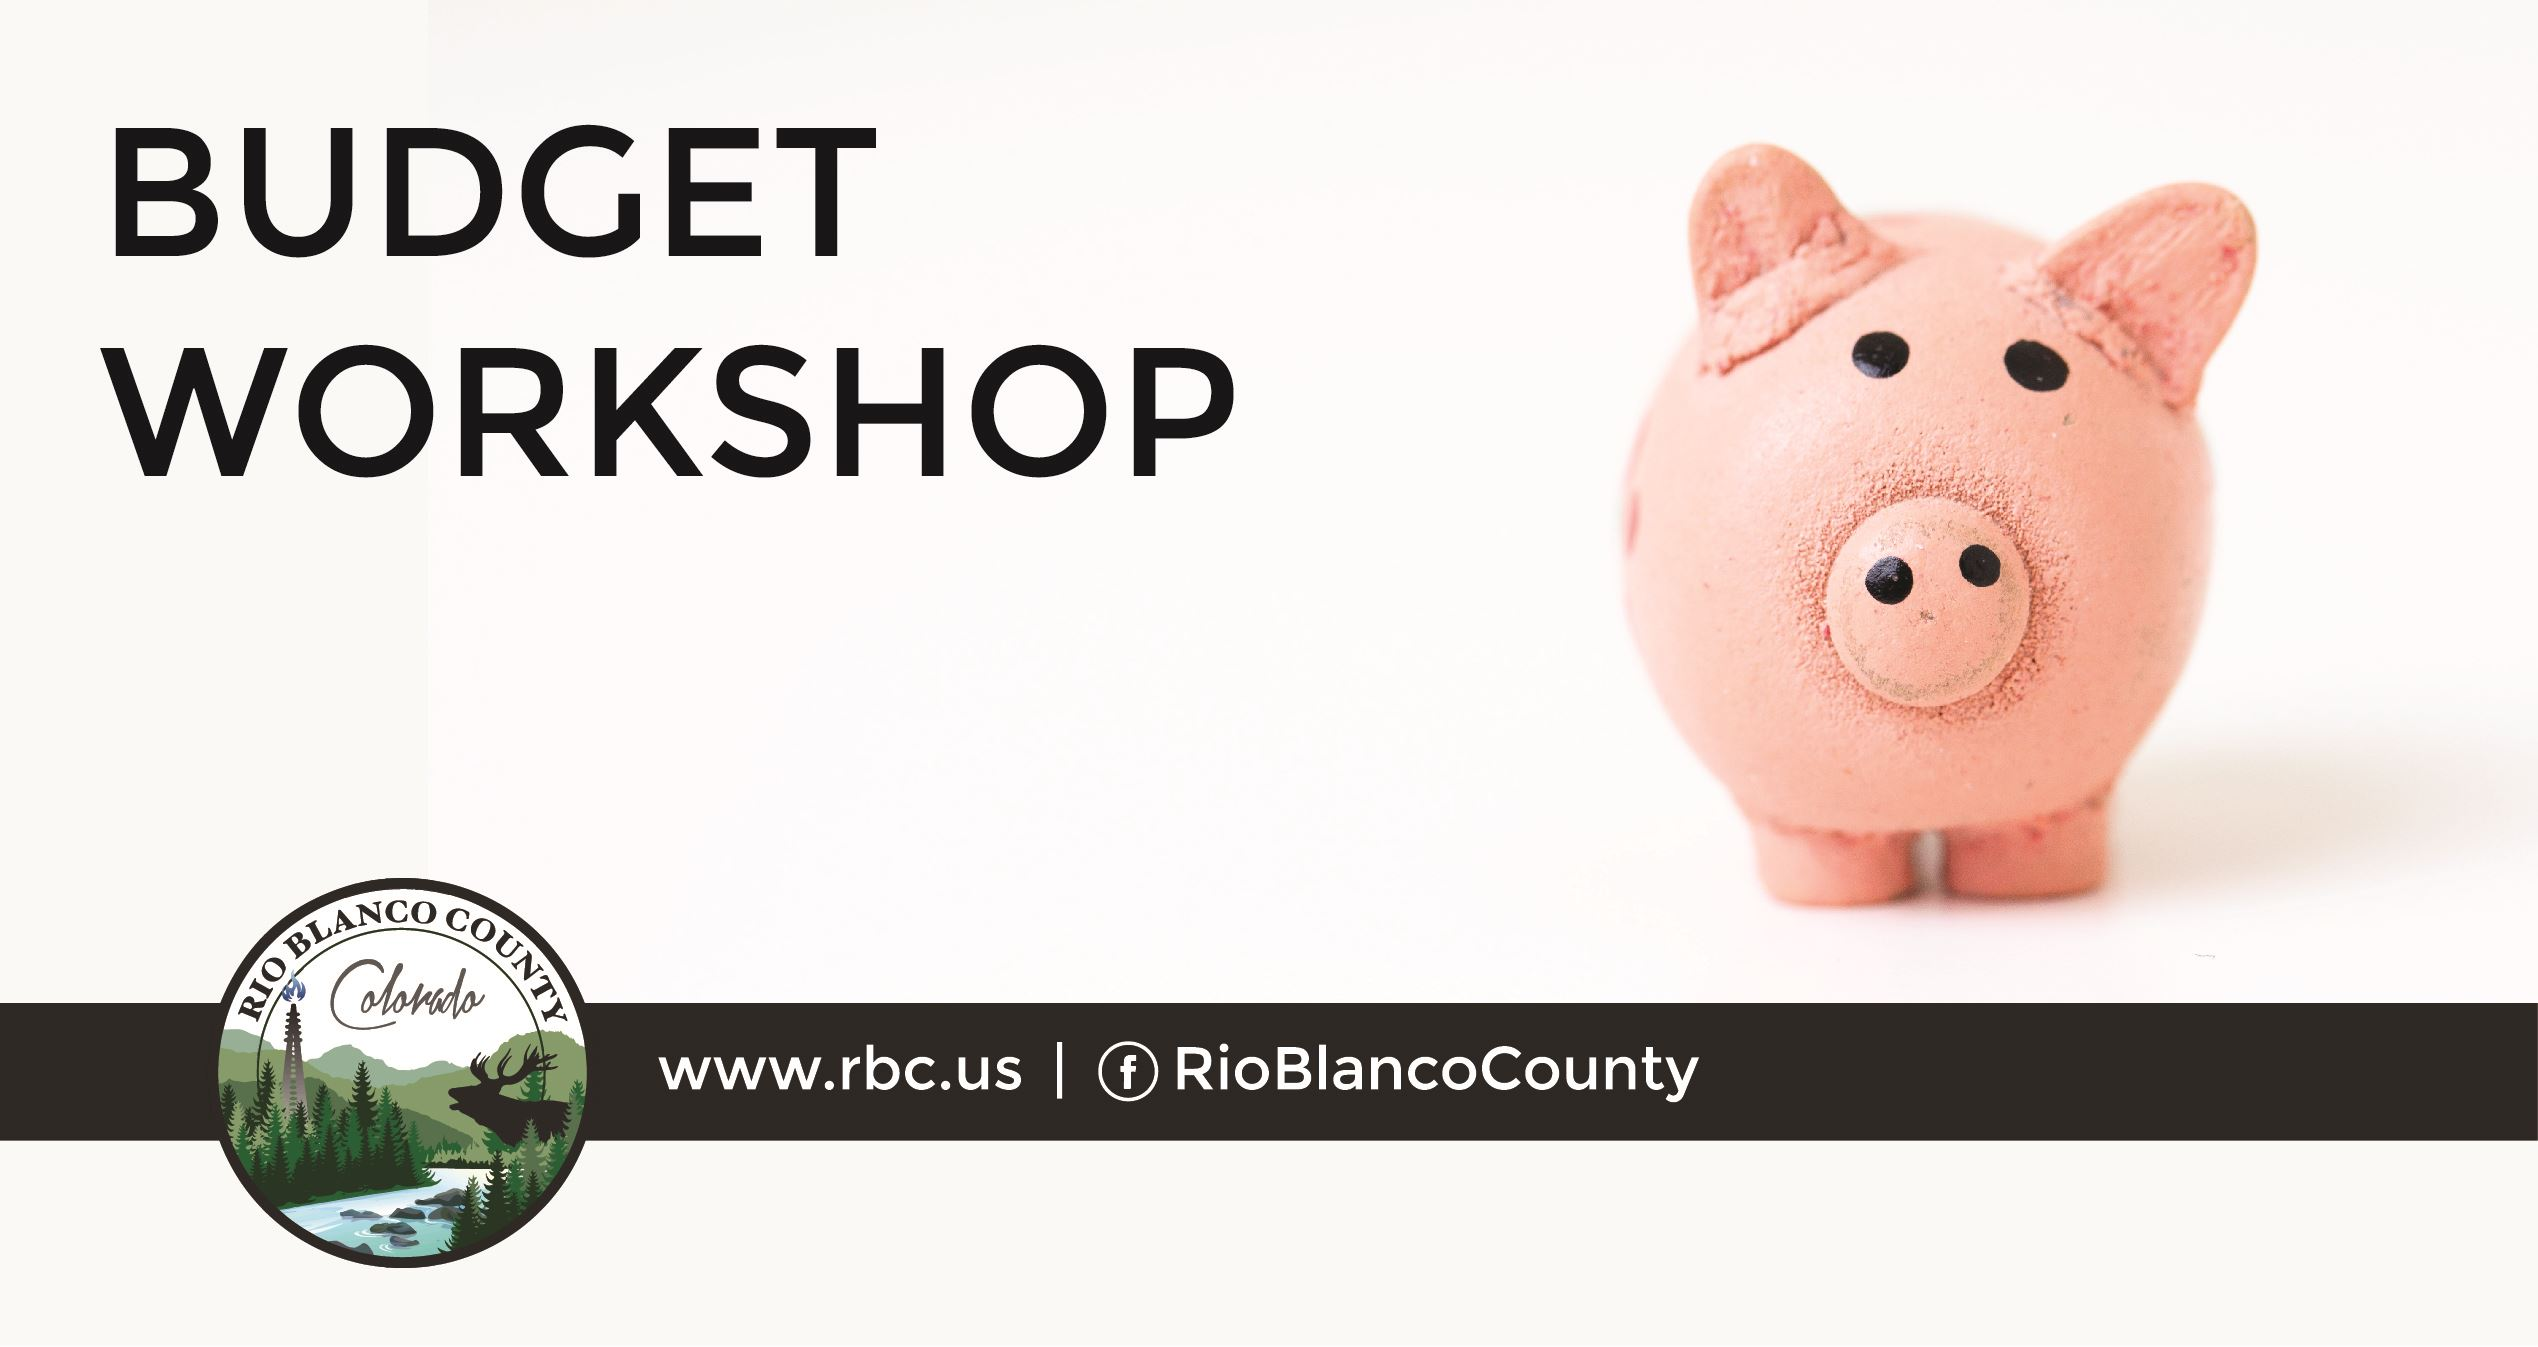 Budget Workshop-01-01